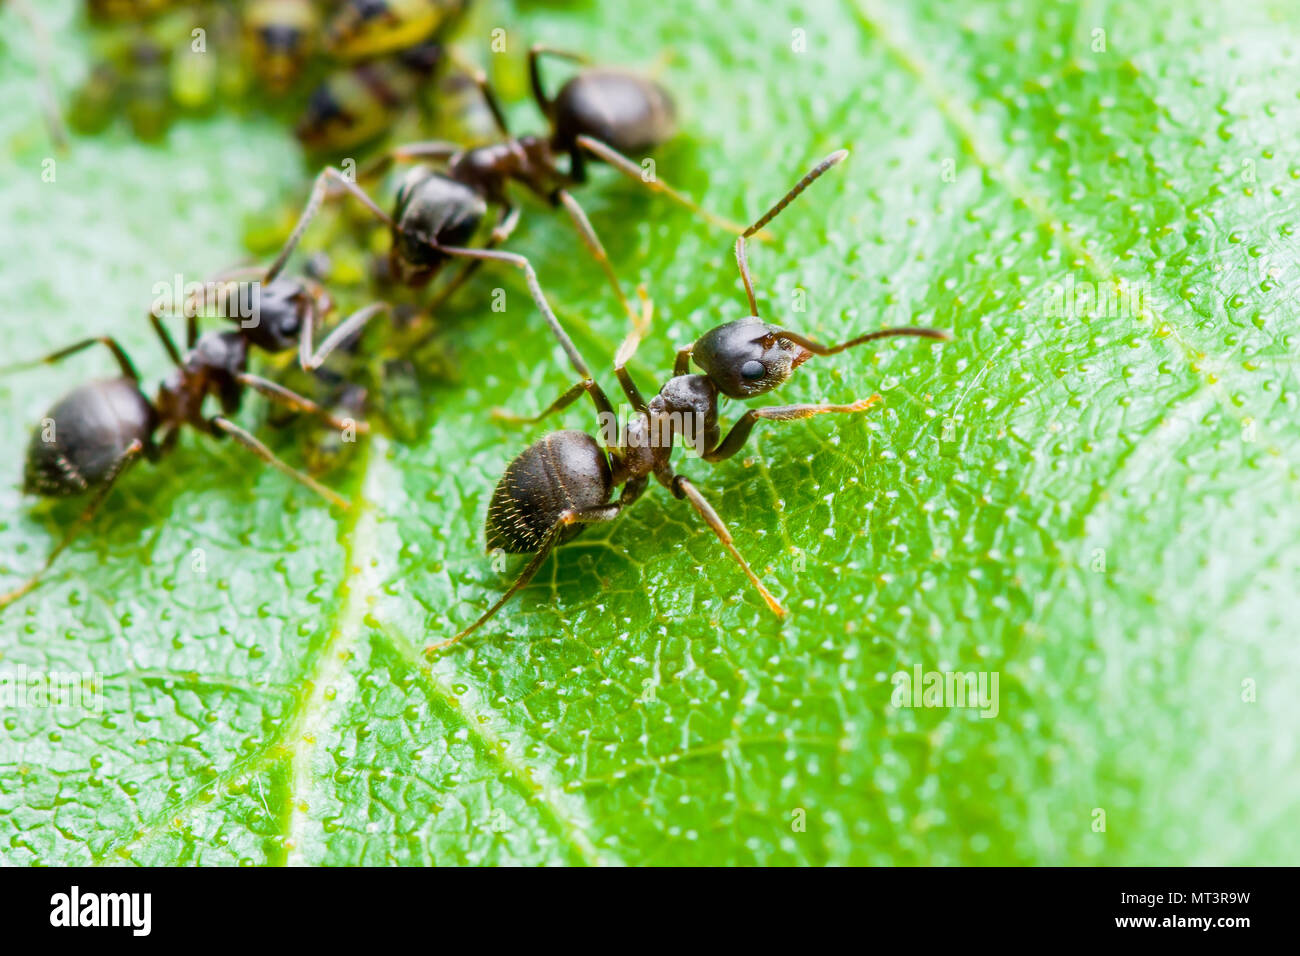 Ant and Aphid Colony on Green Leaf - Stock Image